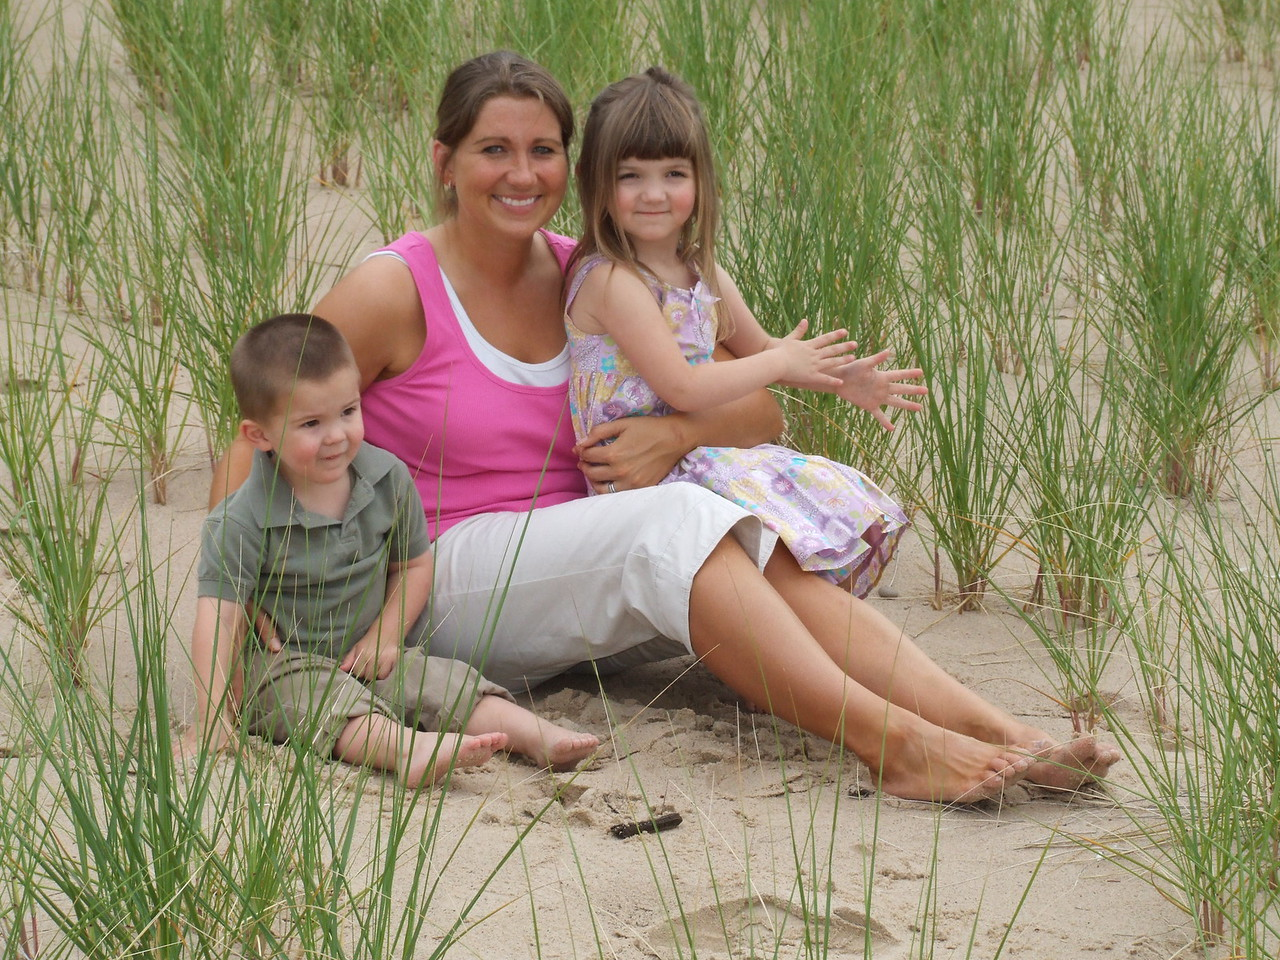 Me and the kids- Summer 2007